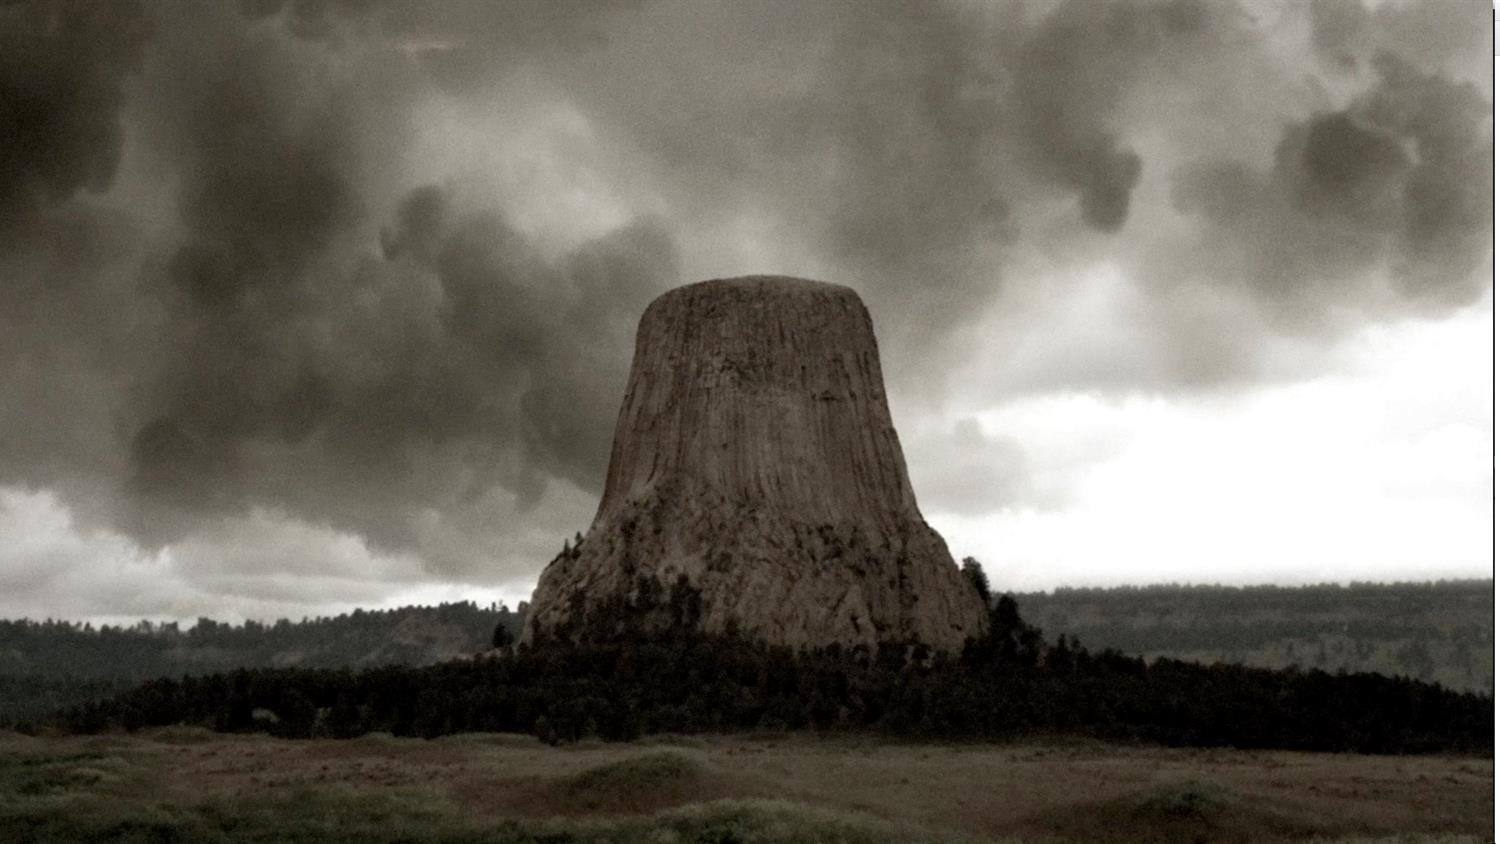 Episode 16: Devil's Tower, WY